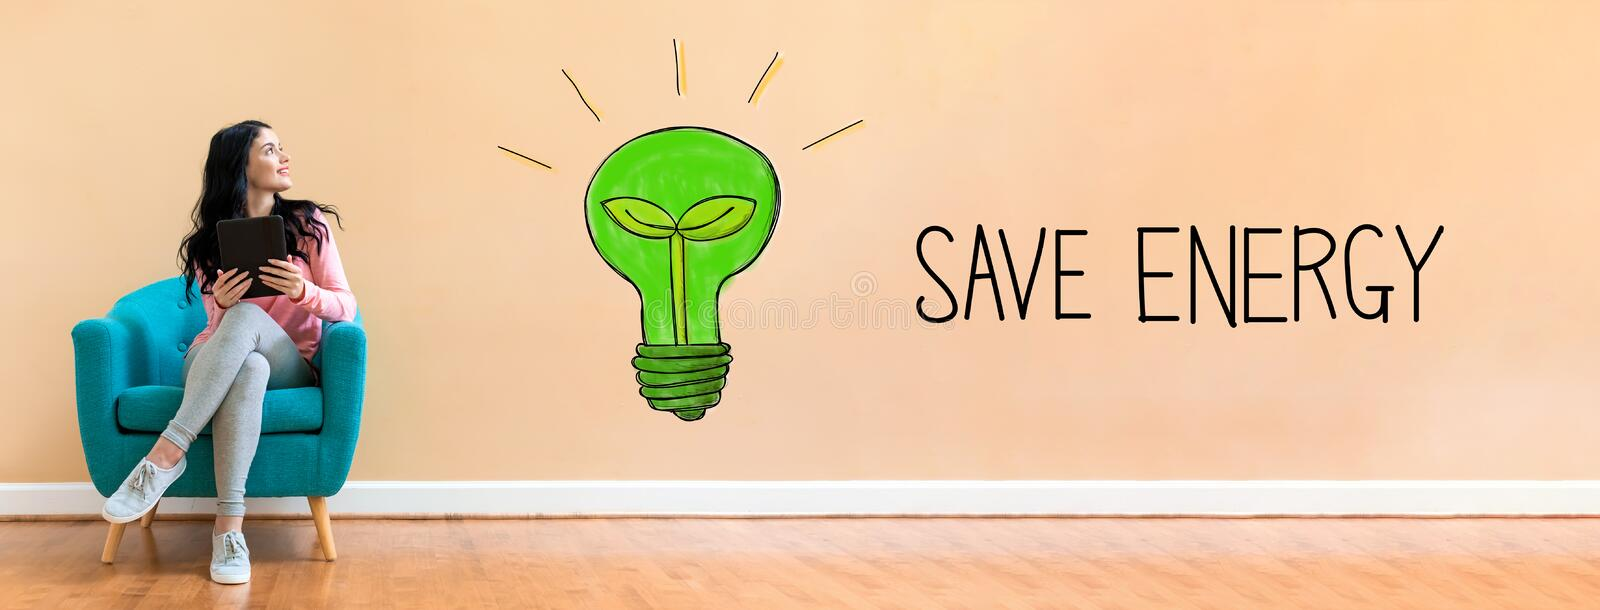 Save energy with woman using a tablet stock photo